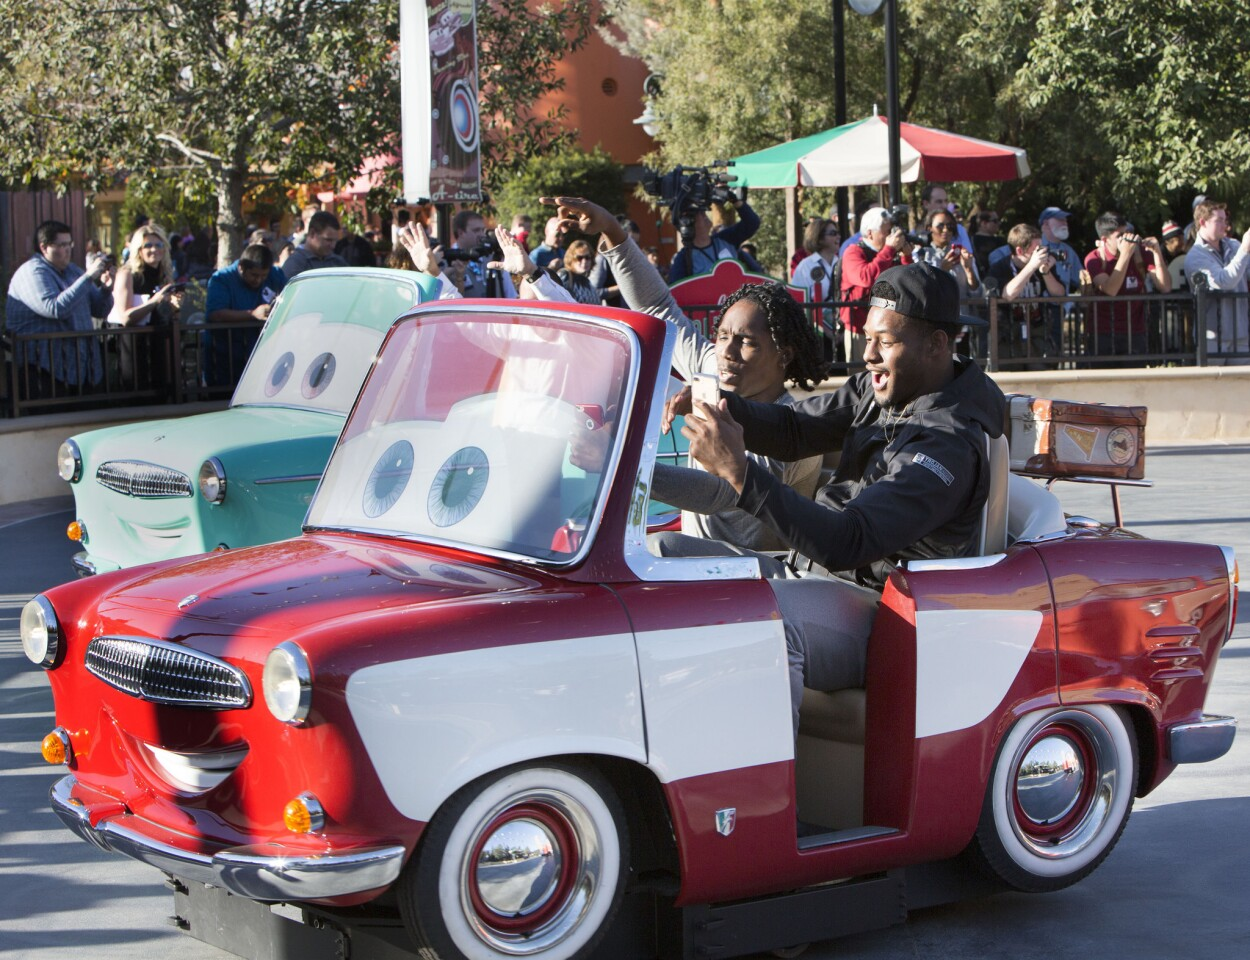 ROSE BOWL TEAMS VISIT DISNEYLAND RESORT (Dec. 27, 2016) – University of Southern California defensive back Adoree' Jackson and wide receiver JuJu Smith-Schuster (left to right) take a spin on Luigi's Rollickin' Roadsters at Disney California Adventure Park in Anaheim, Calif. No. 5 Penn State and No. 9 University of Southern California made their first official appearances of the Rose Bowl Game week on Tuesday at Disney California Adventure Park in Anaheim, Calif. with a special ceremony. The teams will play in the 103rd Rose Bowl Game on Monday, Jan. 2, 2017. (Scott Brinegar/Disneyland Resort)